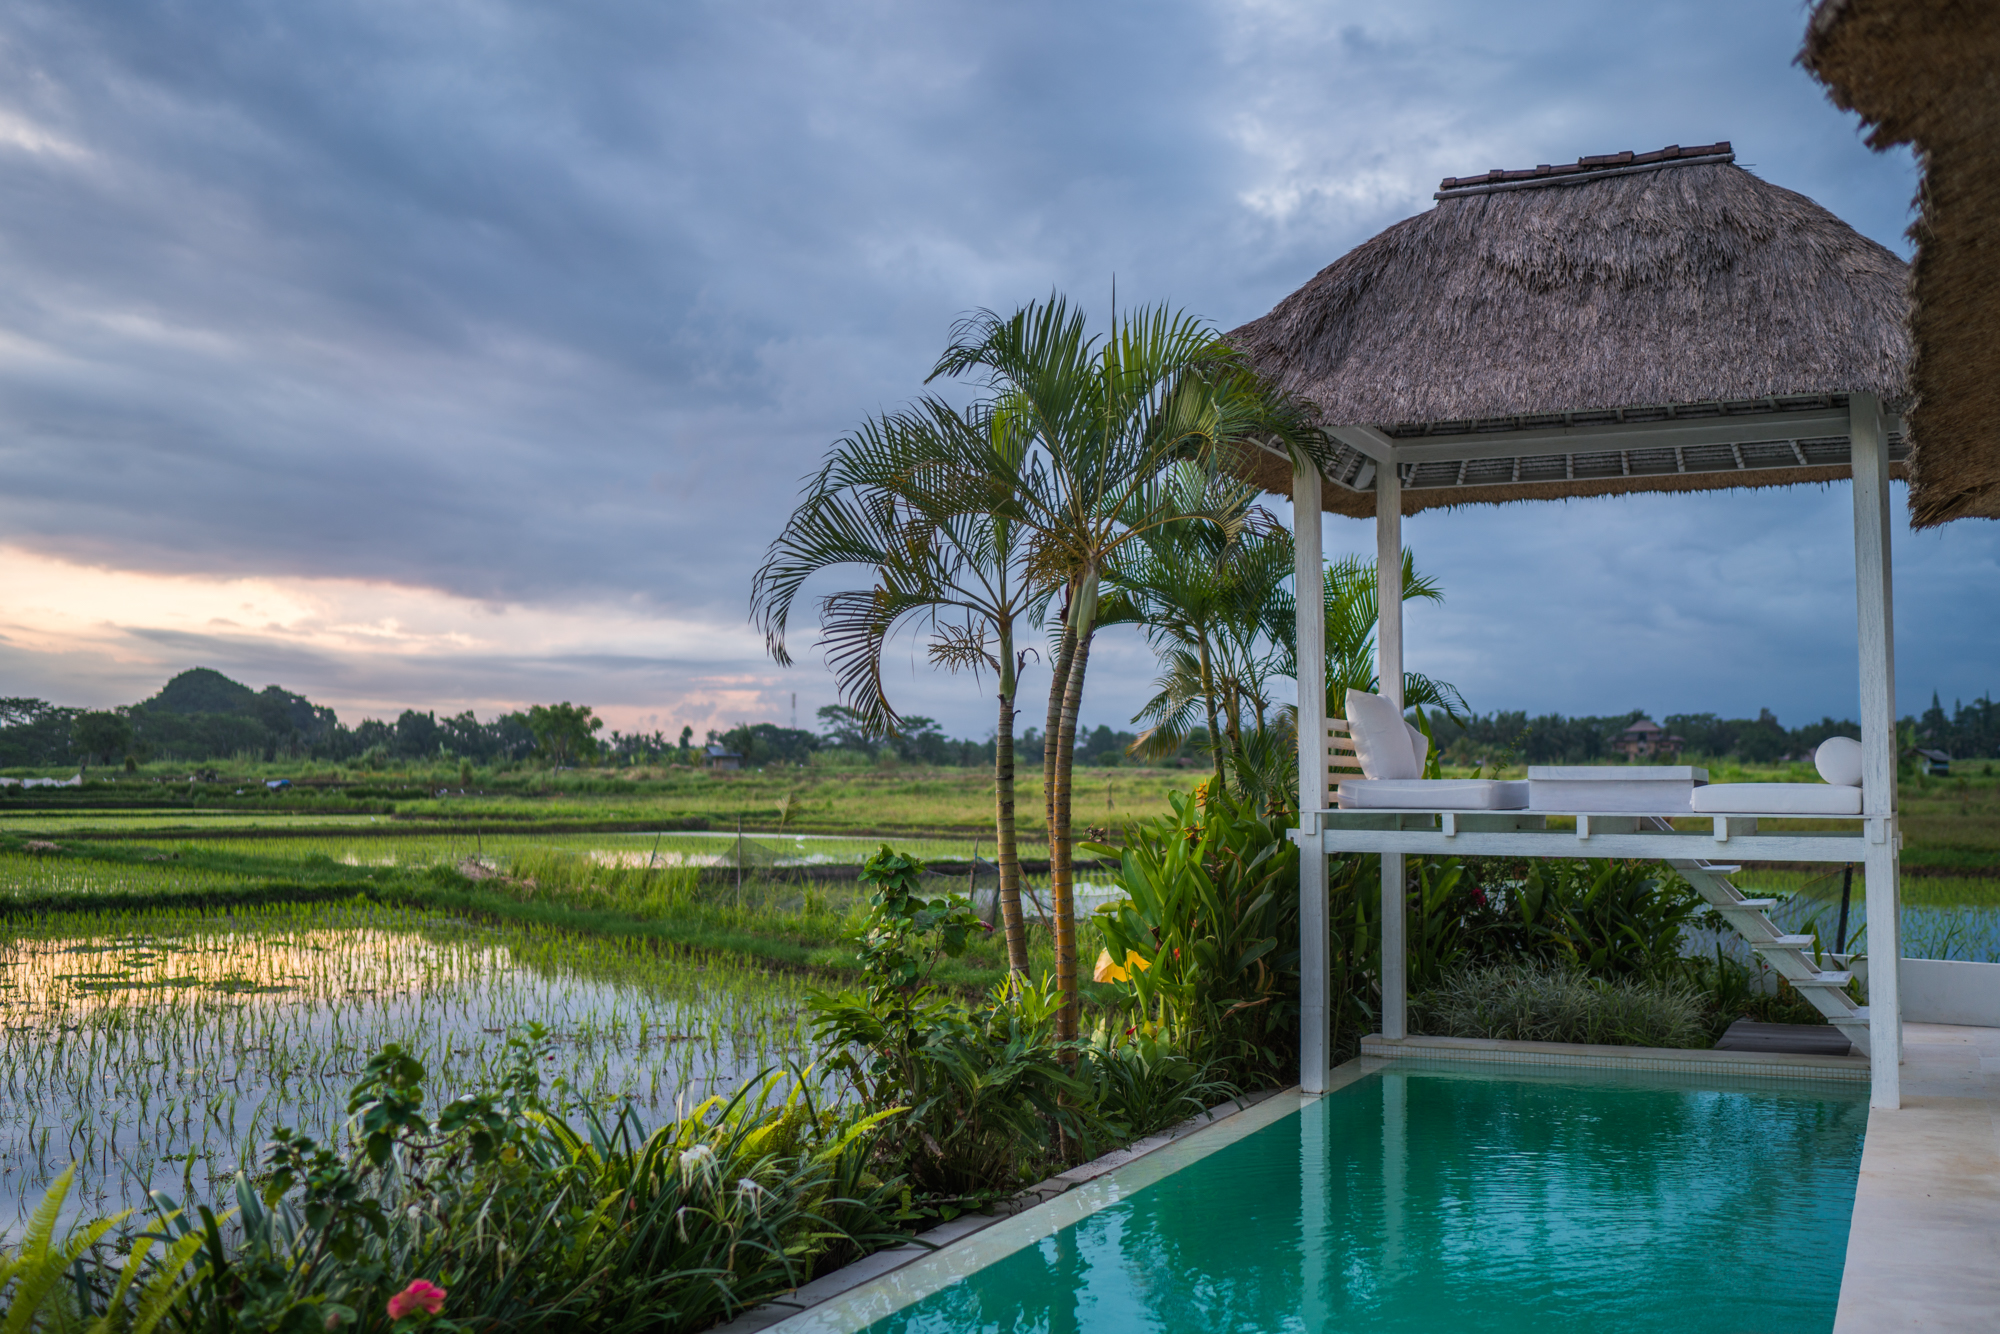 Ubud Rice Fields | Never Settle Travel